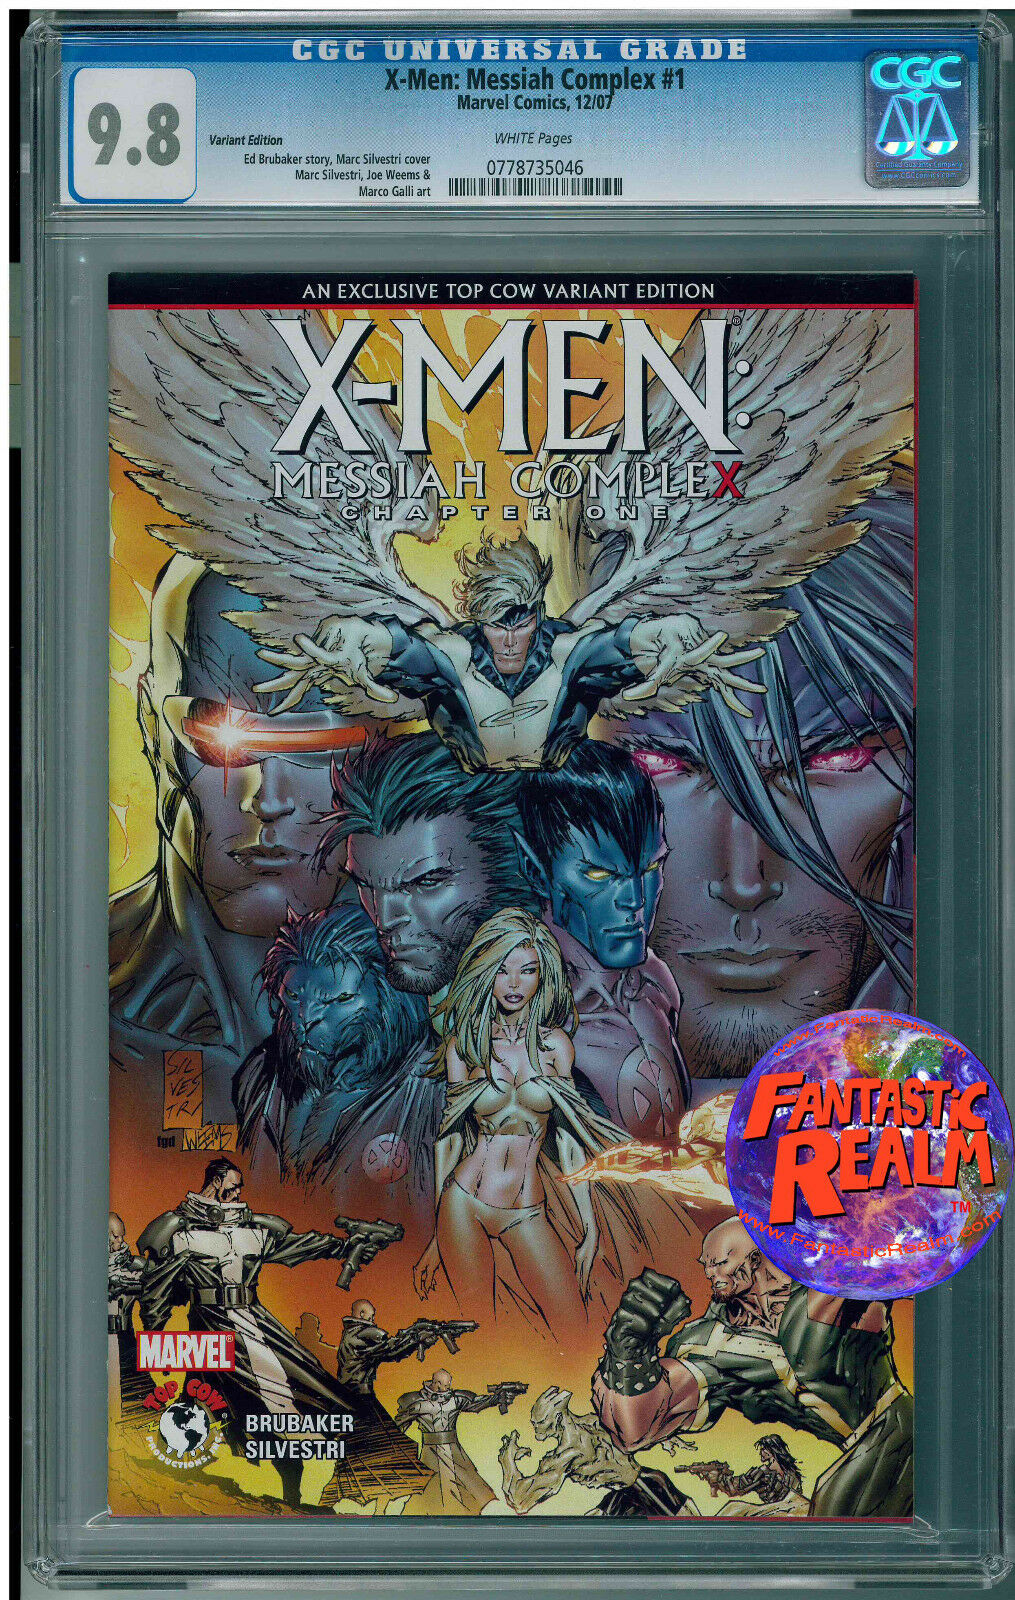 X-MEN MESSIAH COMPLEX CHAPTER ONE #1 TOP COW VARIANT CGC 9.8 MARVEL COMICS